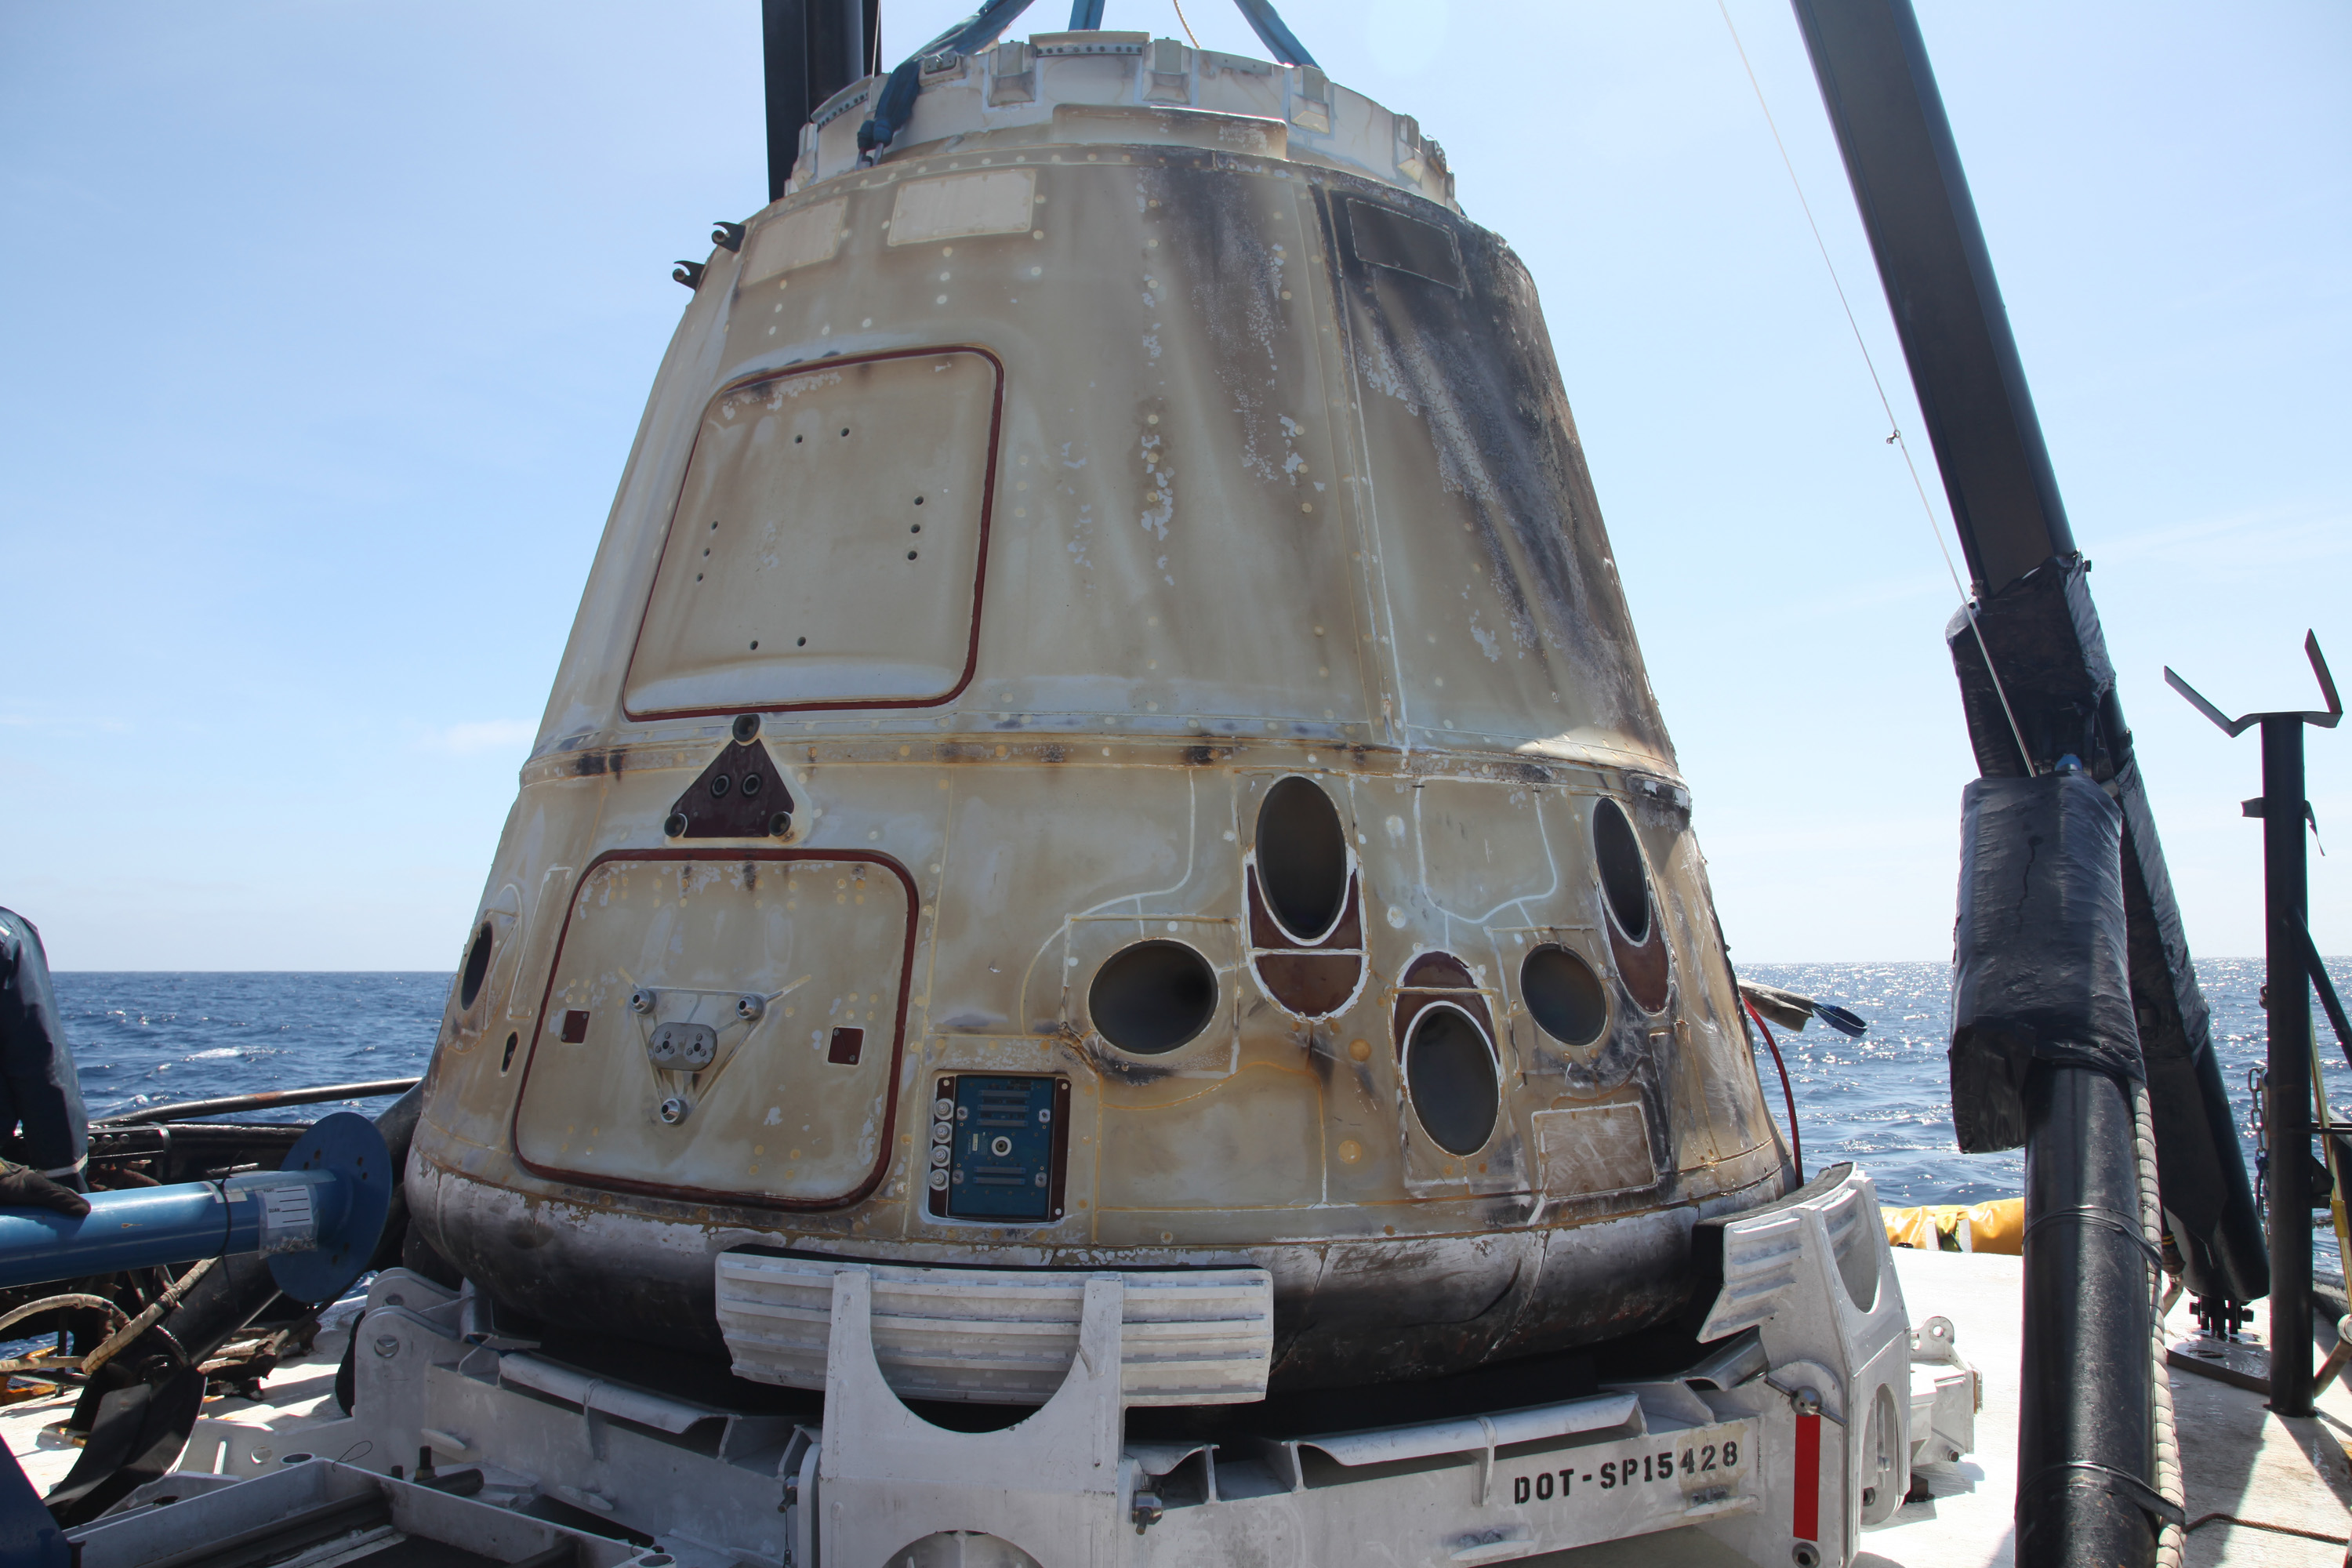 Dragon capsule, manufactured by Space-X